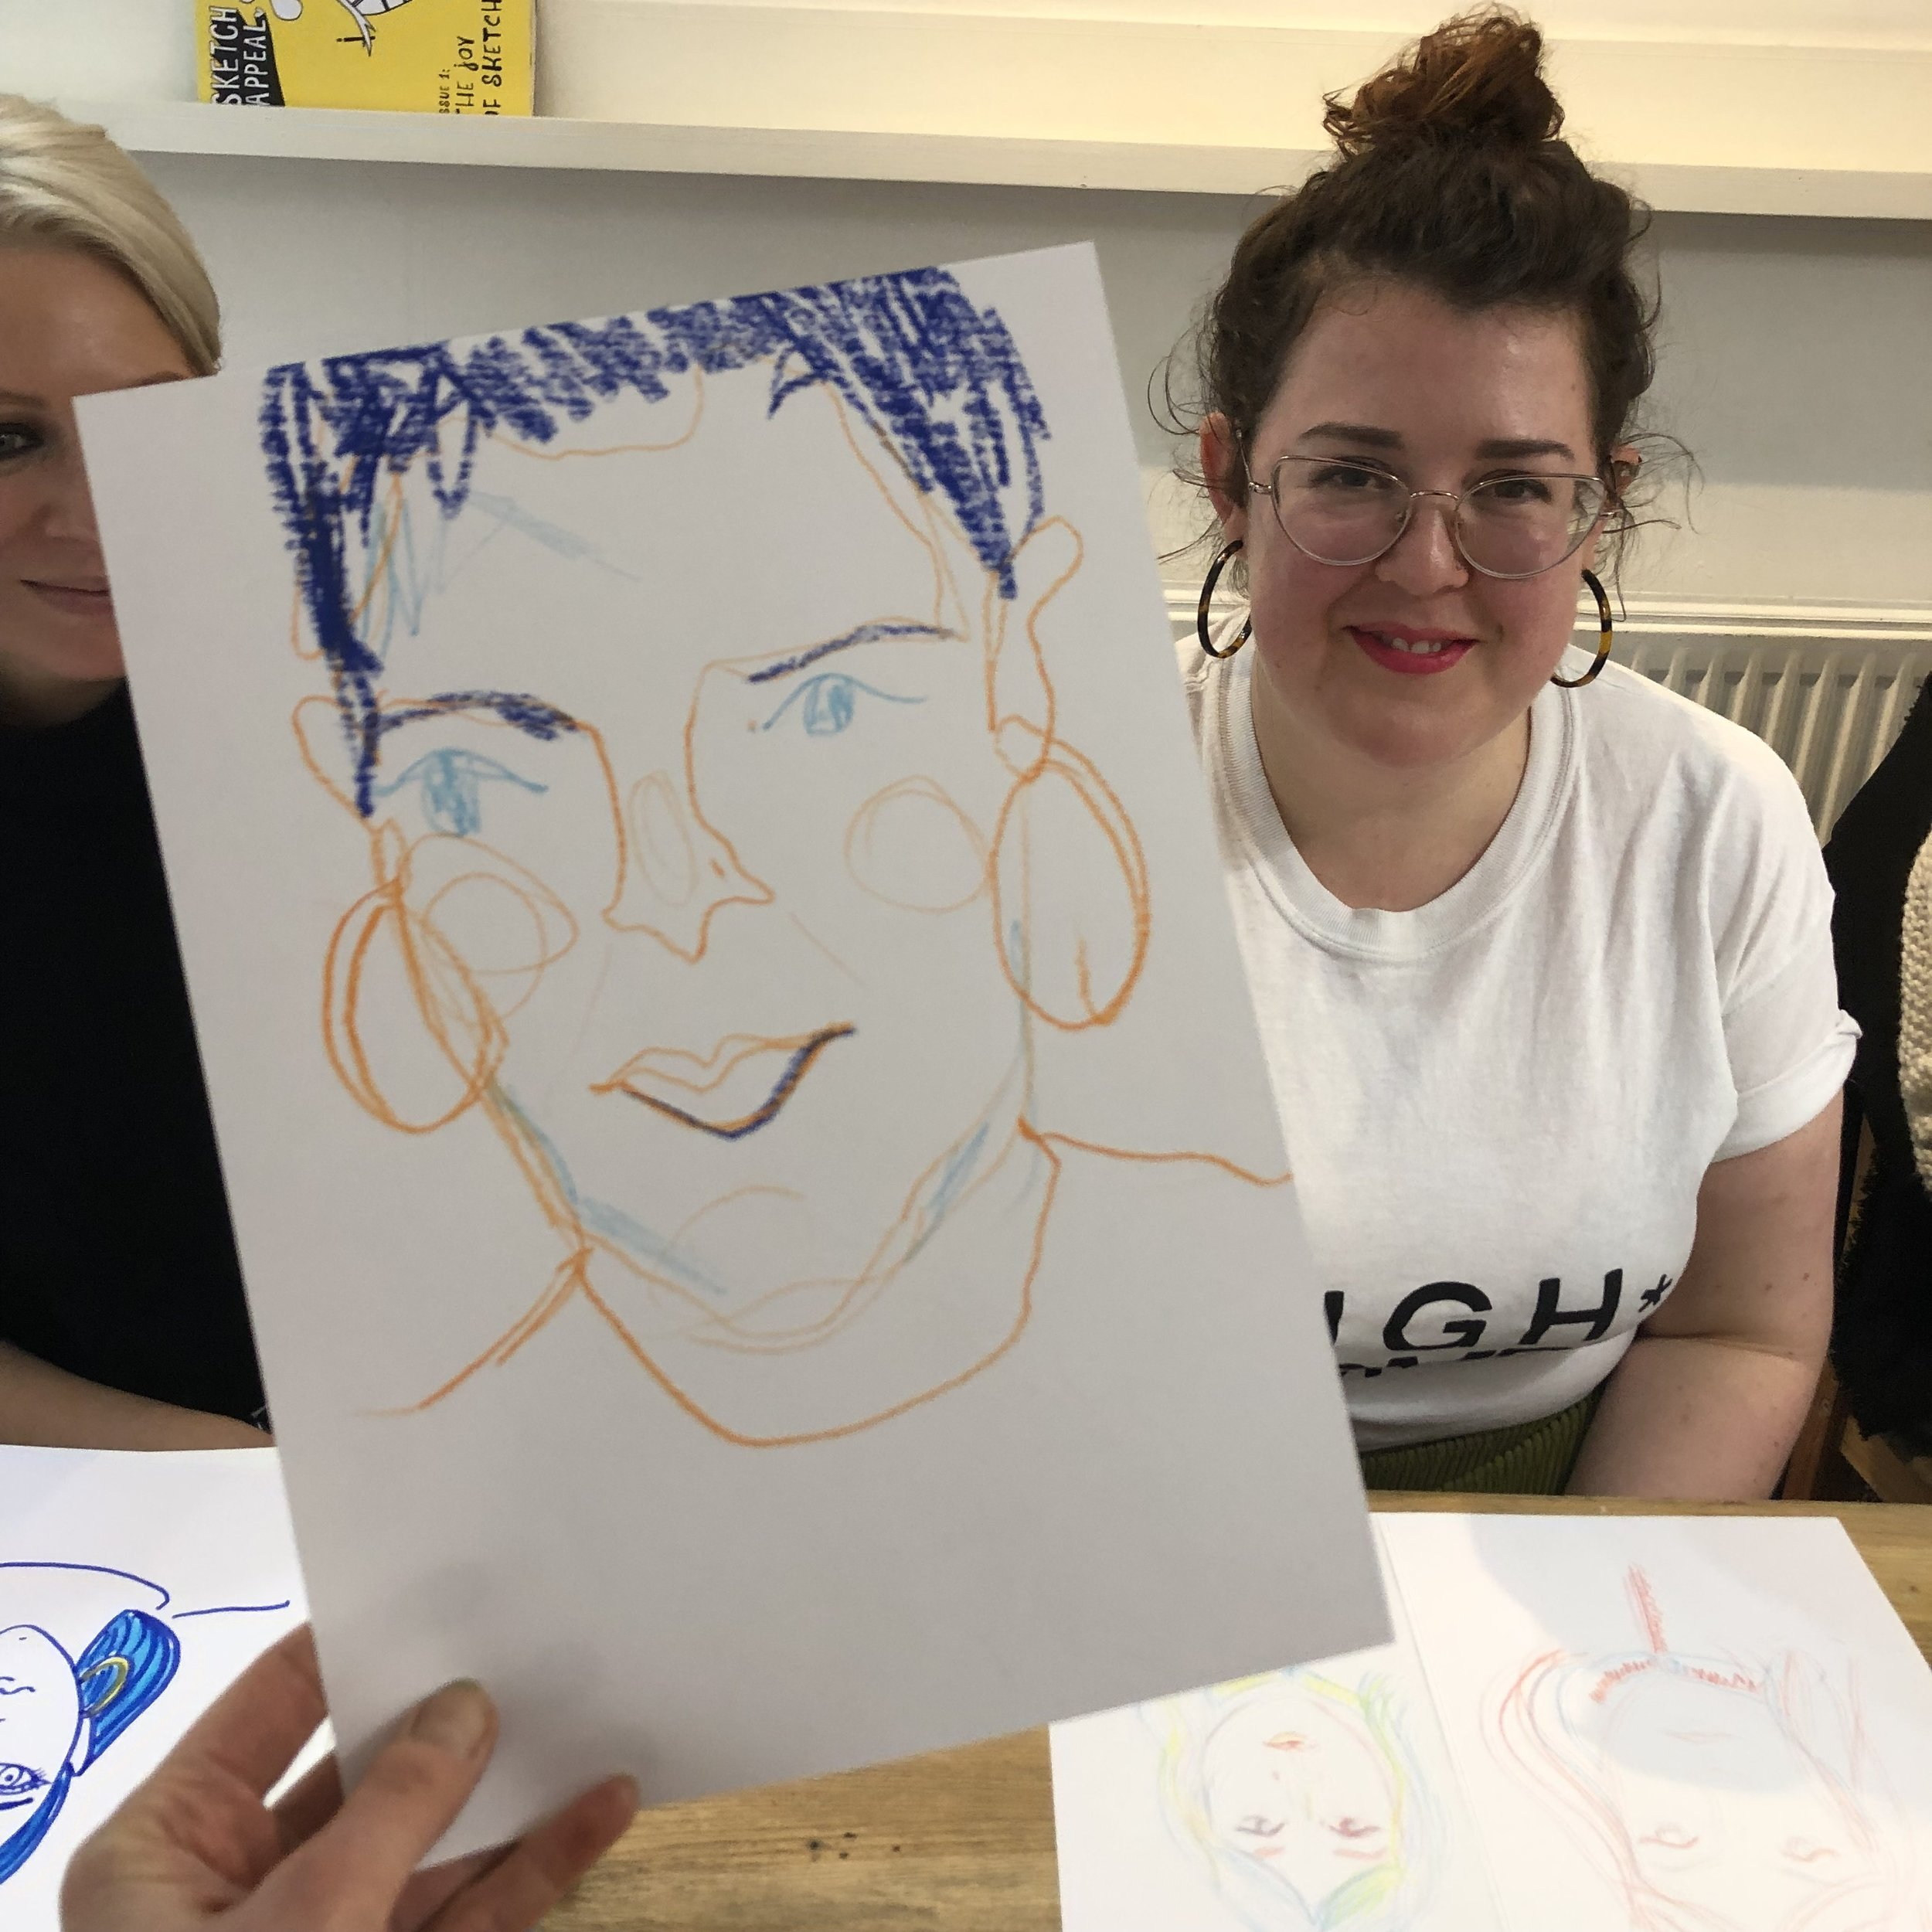 """the social sketchup is what drawing should be: accessible, supportive and FUN! - Emma Warfield - a familiar face at our events!"